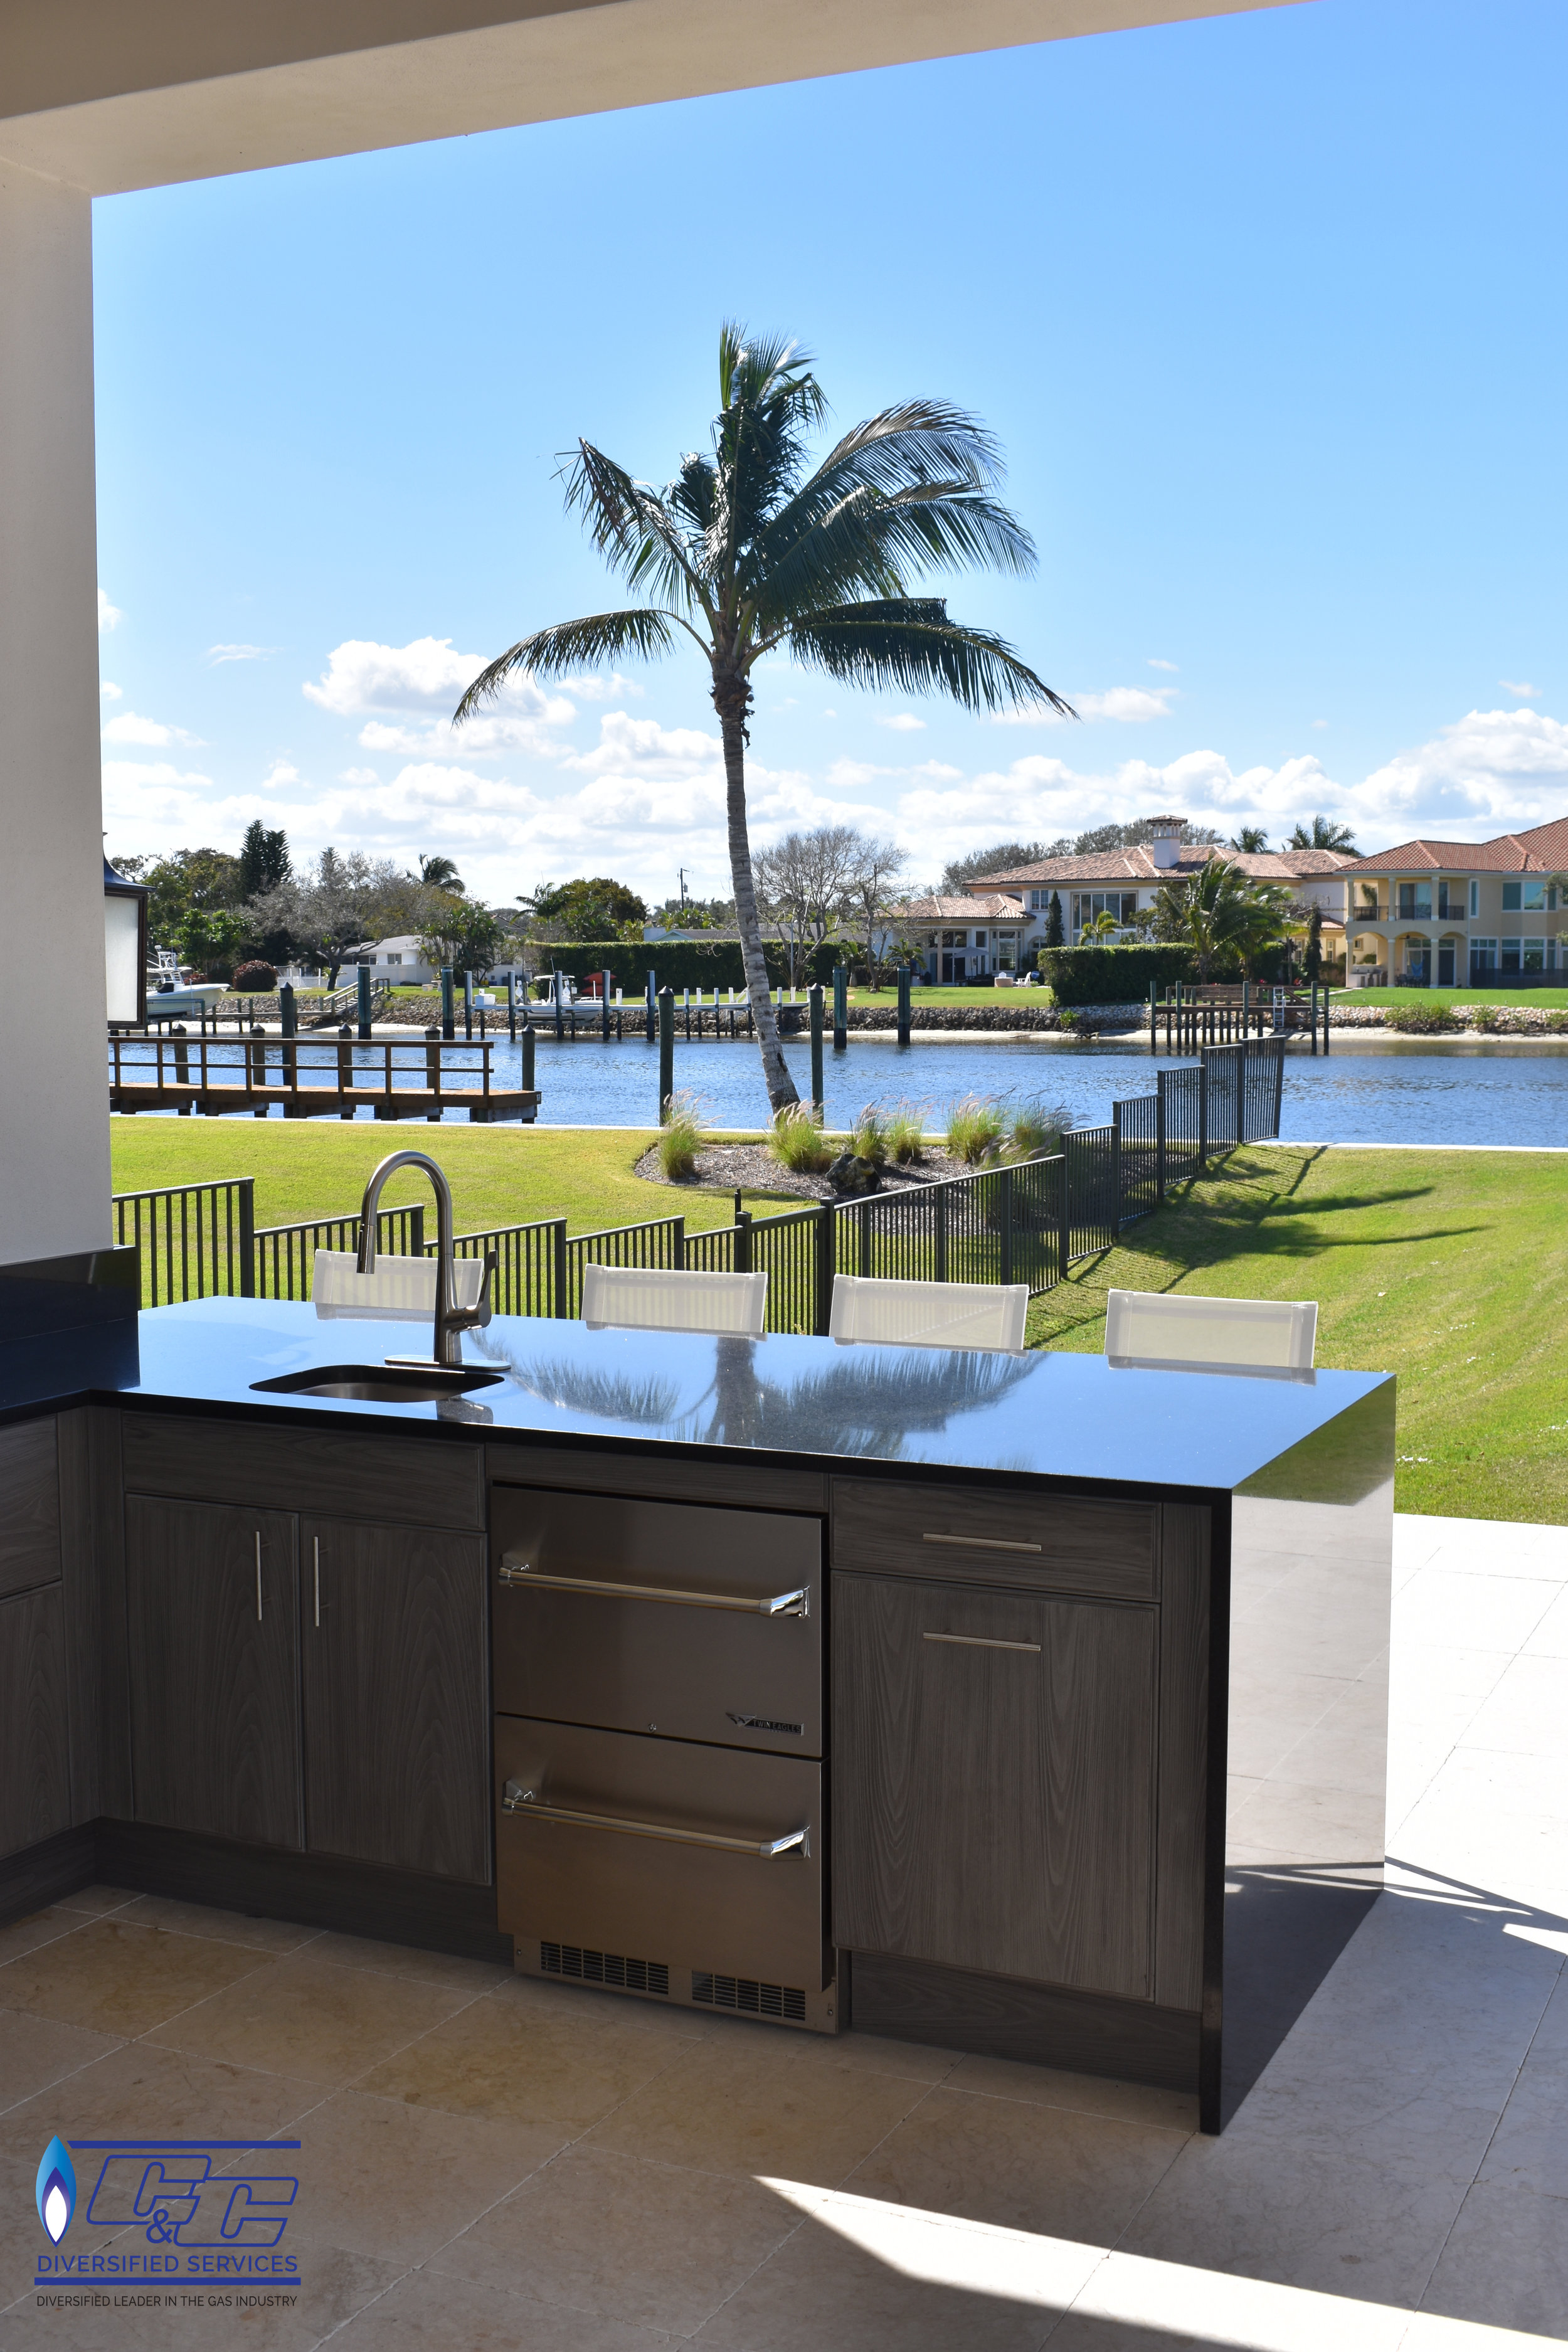 NatureKast Weatherproof Cabinetry in Fossil Gray with a Beautiful Granite from our Showroom Selection with a Waterfall Edge